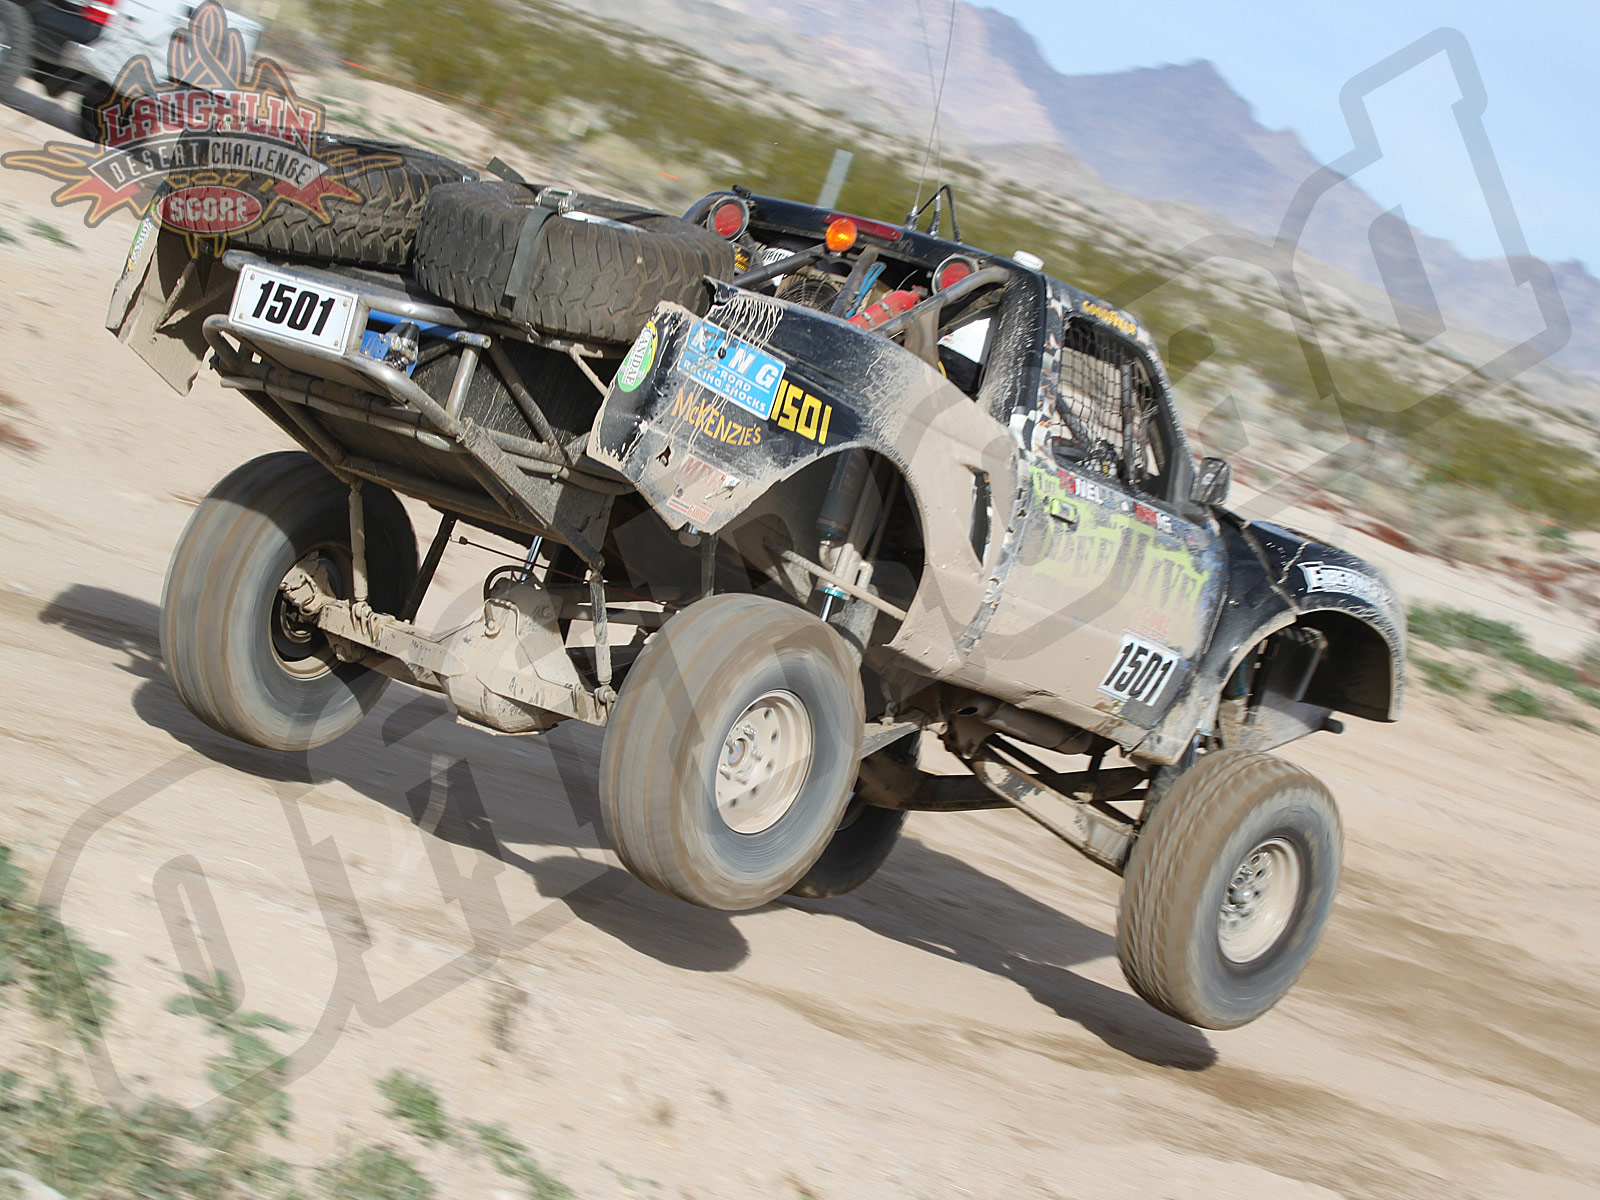 012011or 6582+2011 score laughlin desert challenge+truck classes